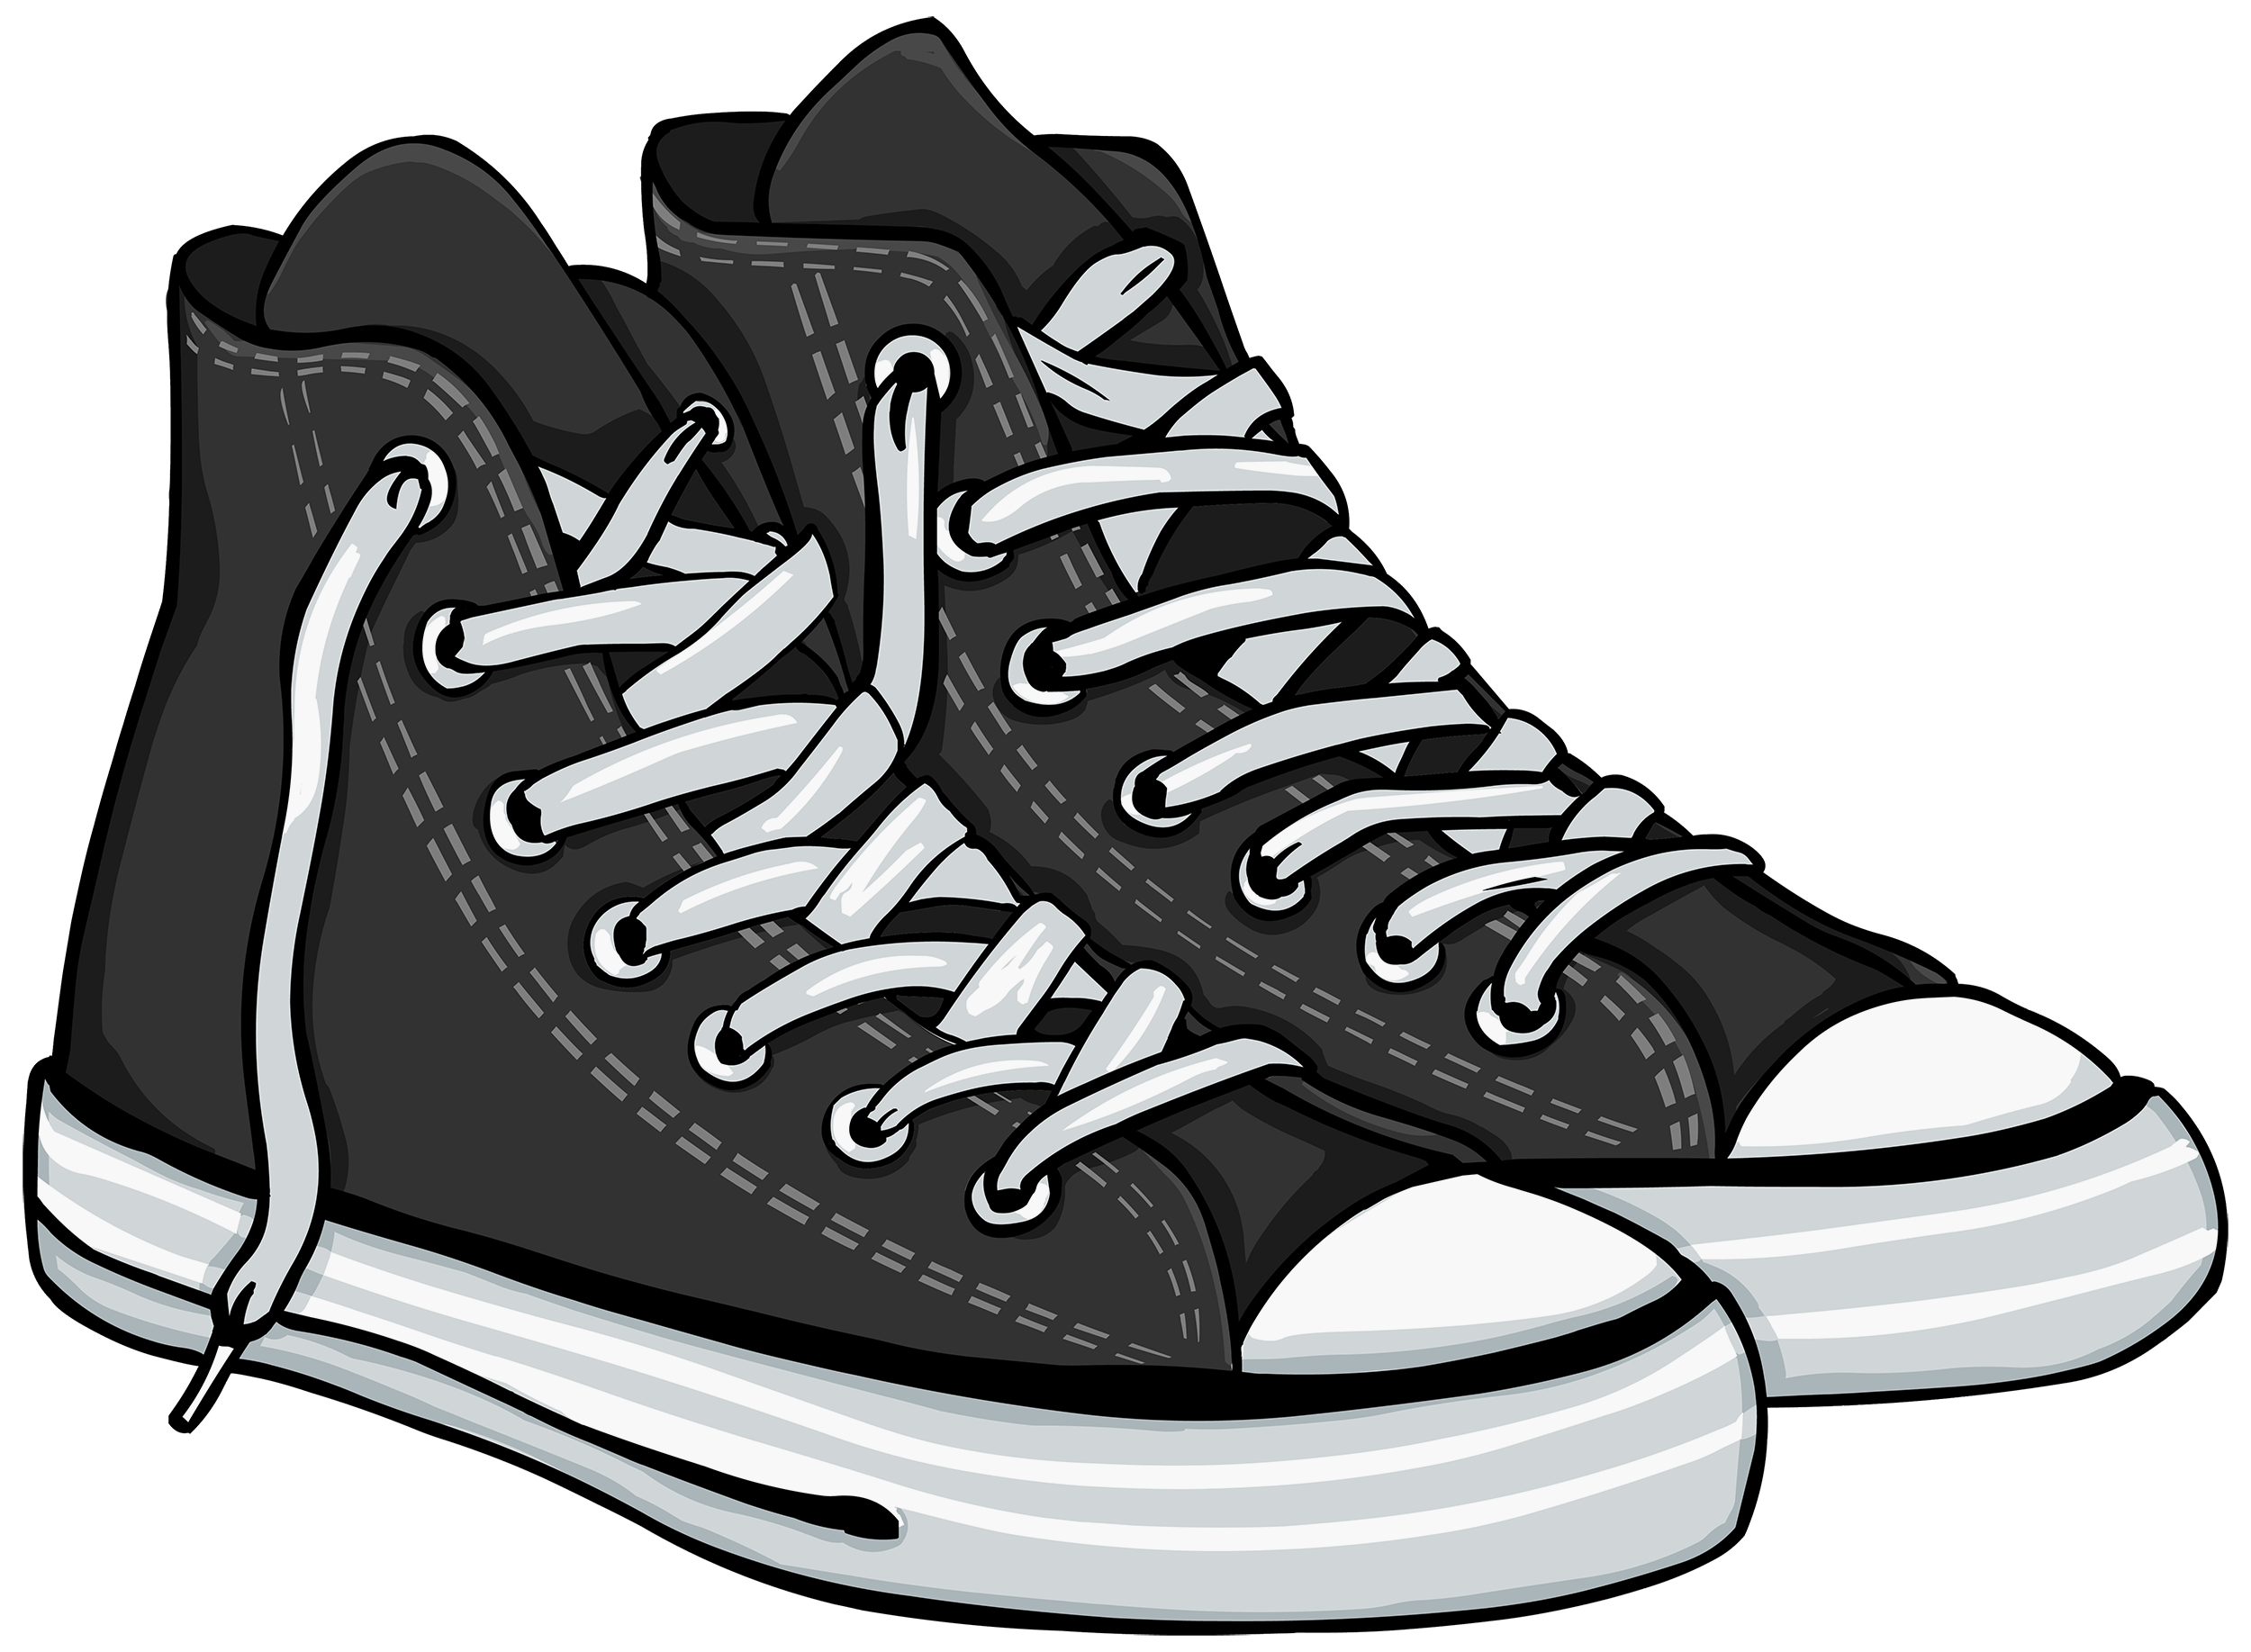 Art palette sneakers clipart clip art black and white download Pair of shoes clipart black and white 3 » Clipart Portal clip art black and white download